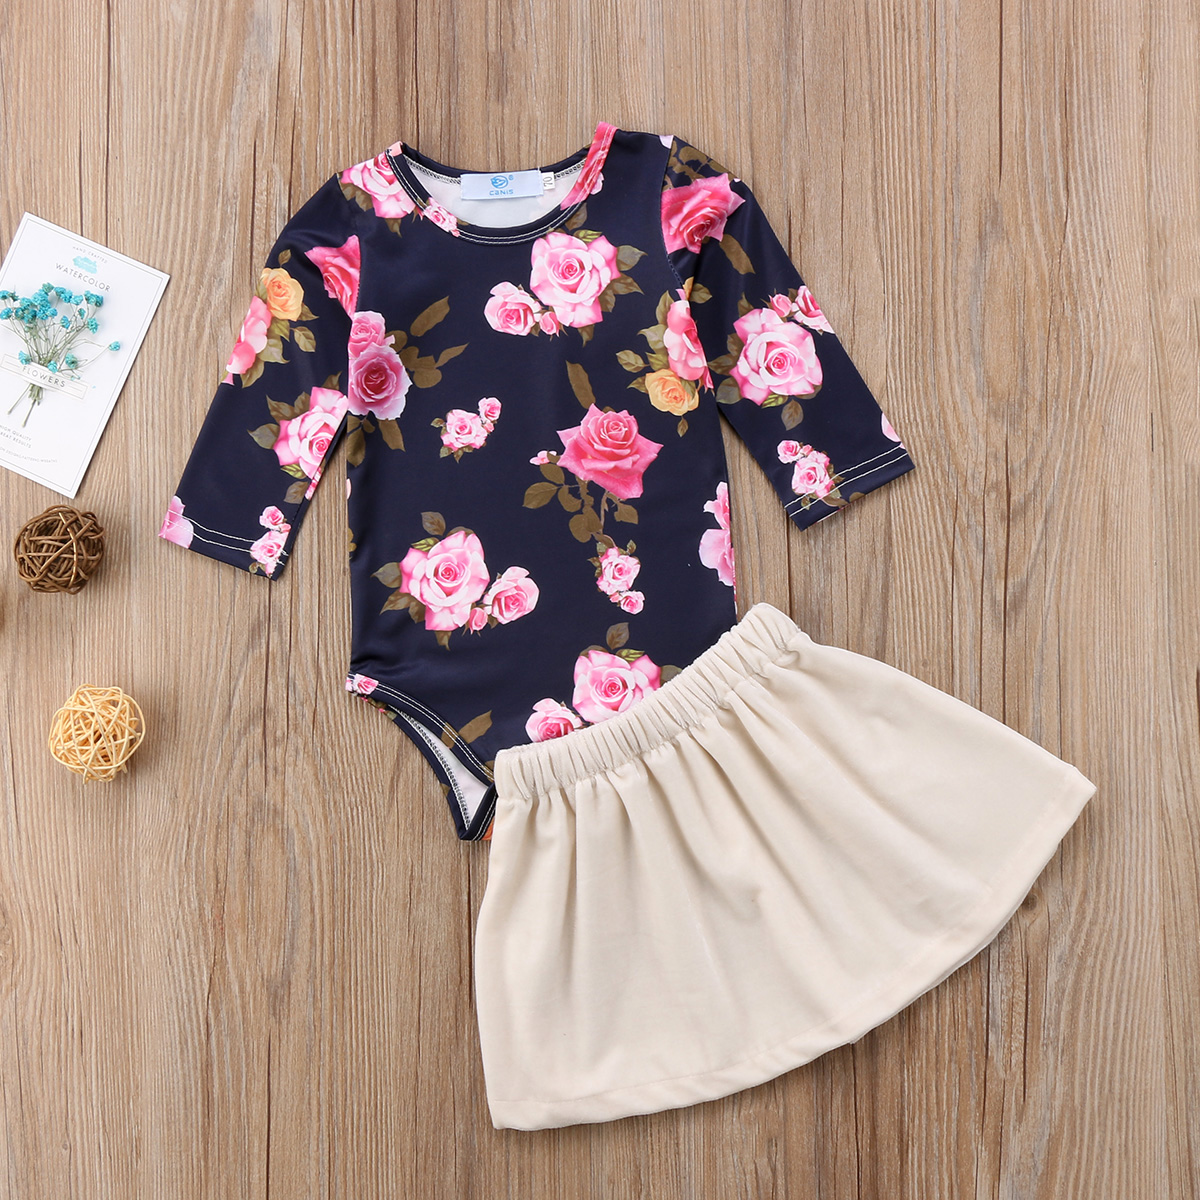 Girls' Baby Clothing Girls Flower Romper Jumpsuit Top And Velvet Dress Skirts Infant Outfits Costume Full Sleeve Cotoon Casual Clothing Sets